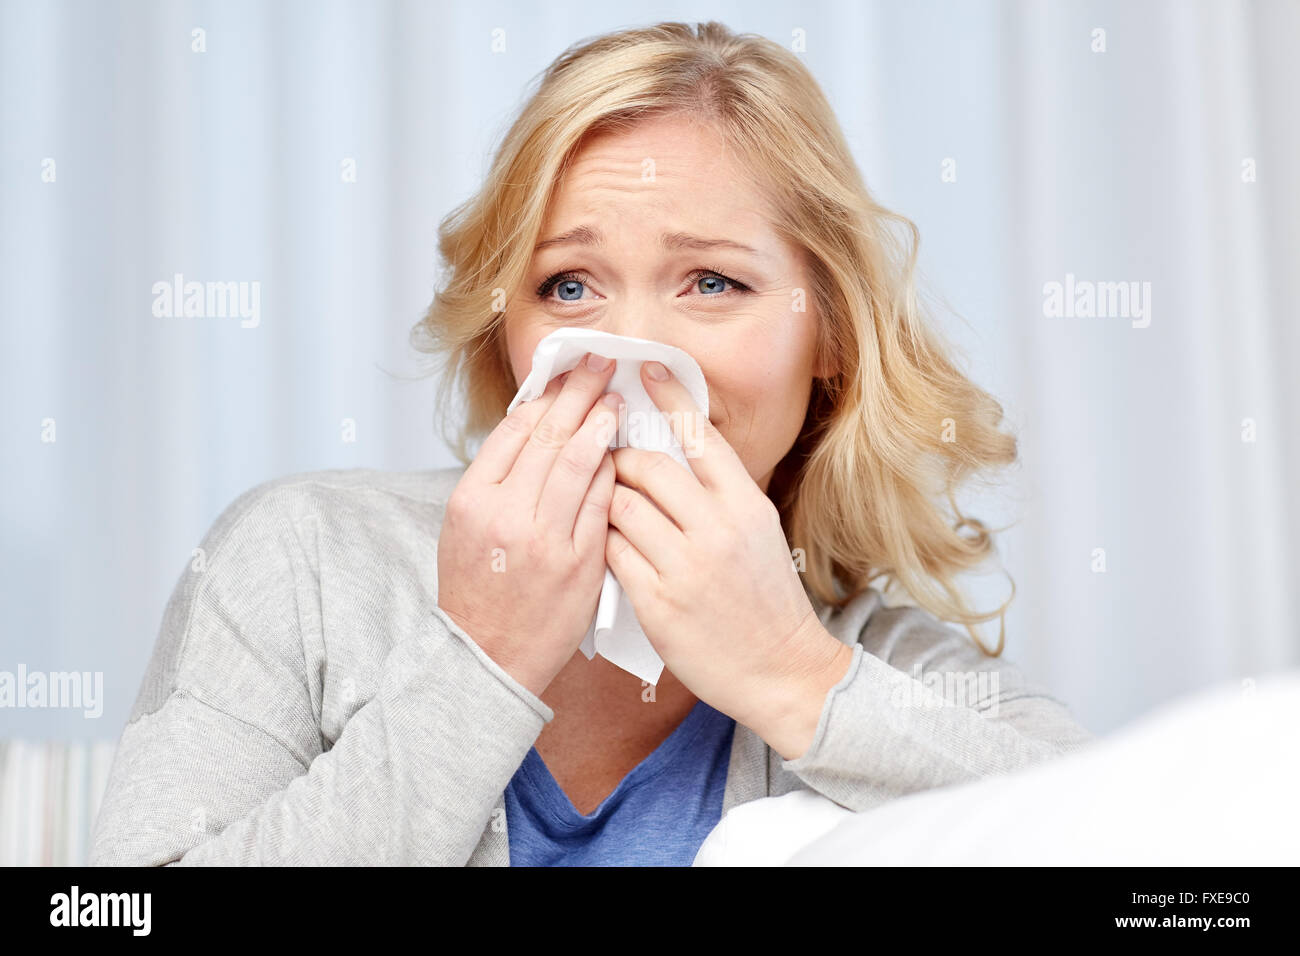 ill woman blowing nose to paper napkin - Stock Image